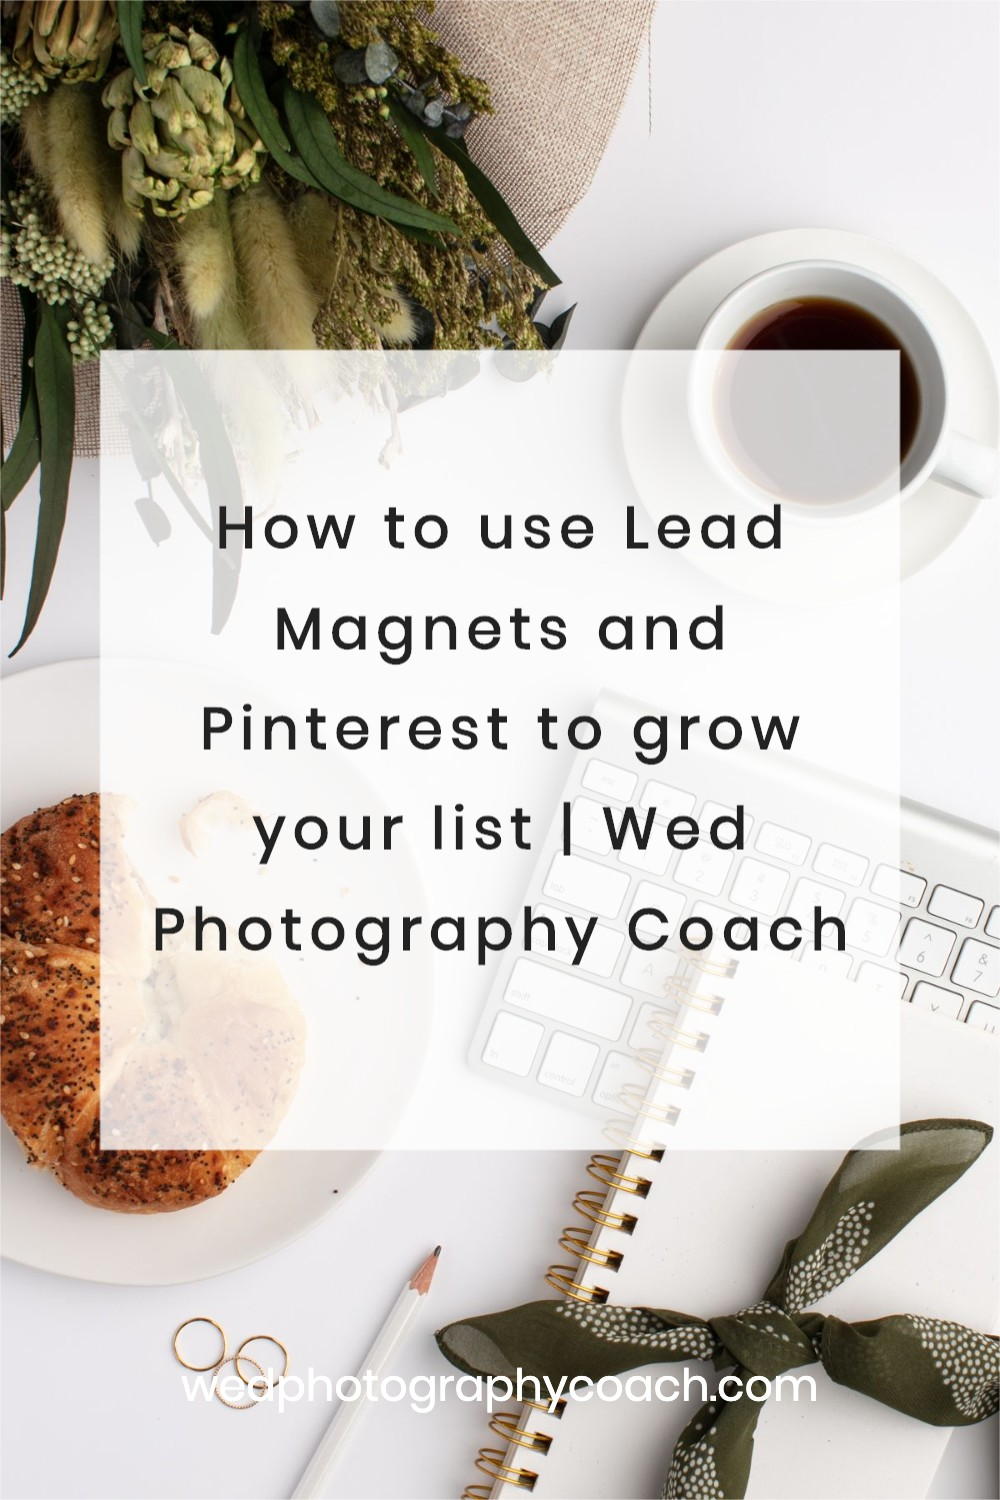 How-to-use-Lead-Magnets-and-Pinterest-to-grow-your-list 2